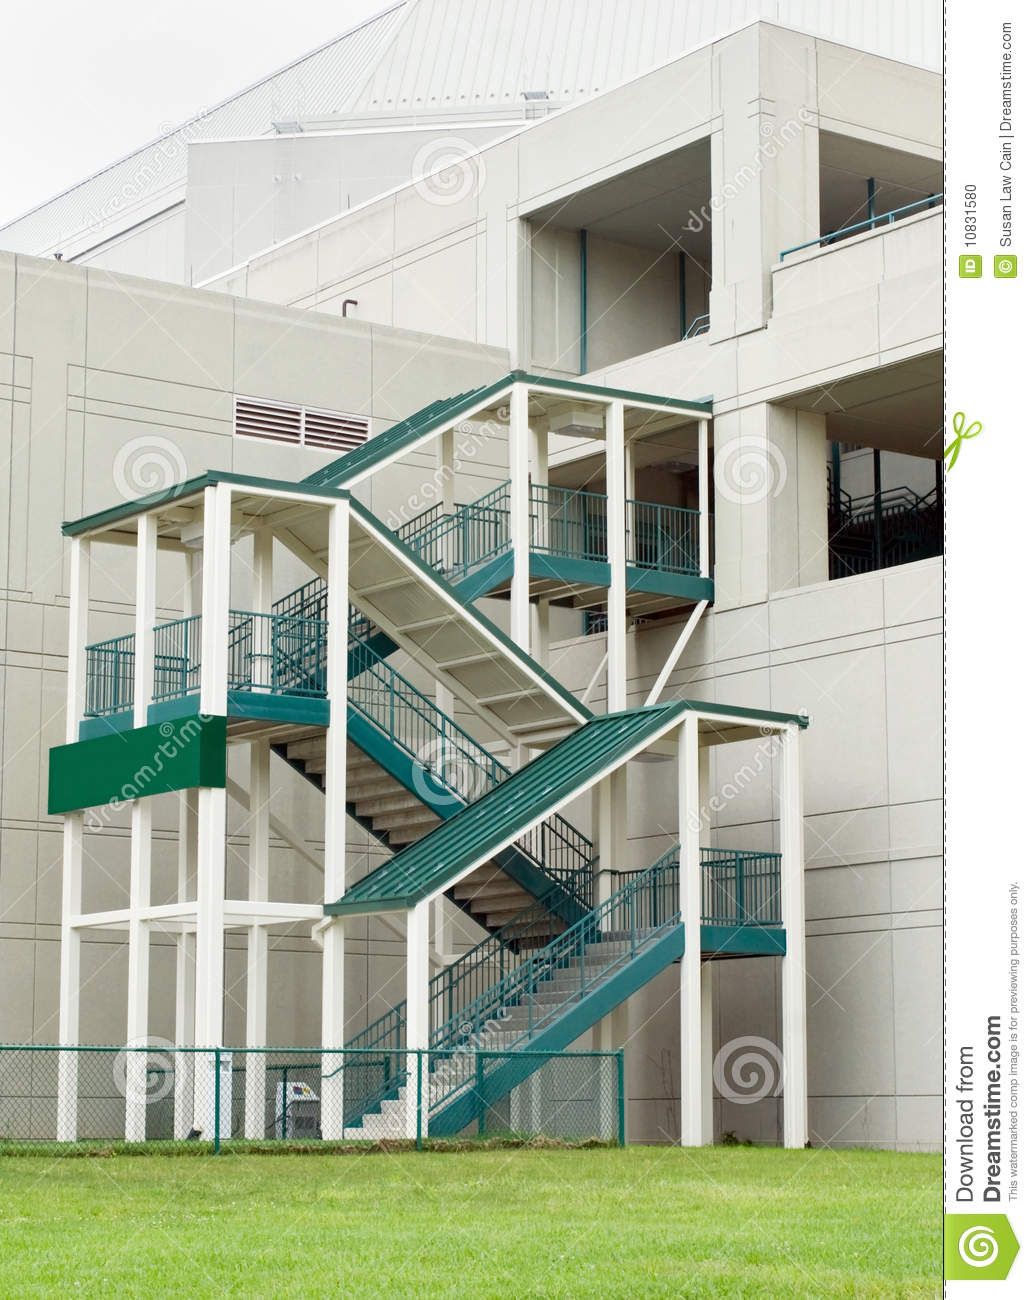 Outdoor stairway stock photo image 10831580 for Escaleras al aire